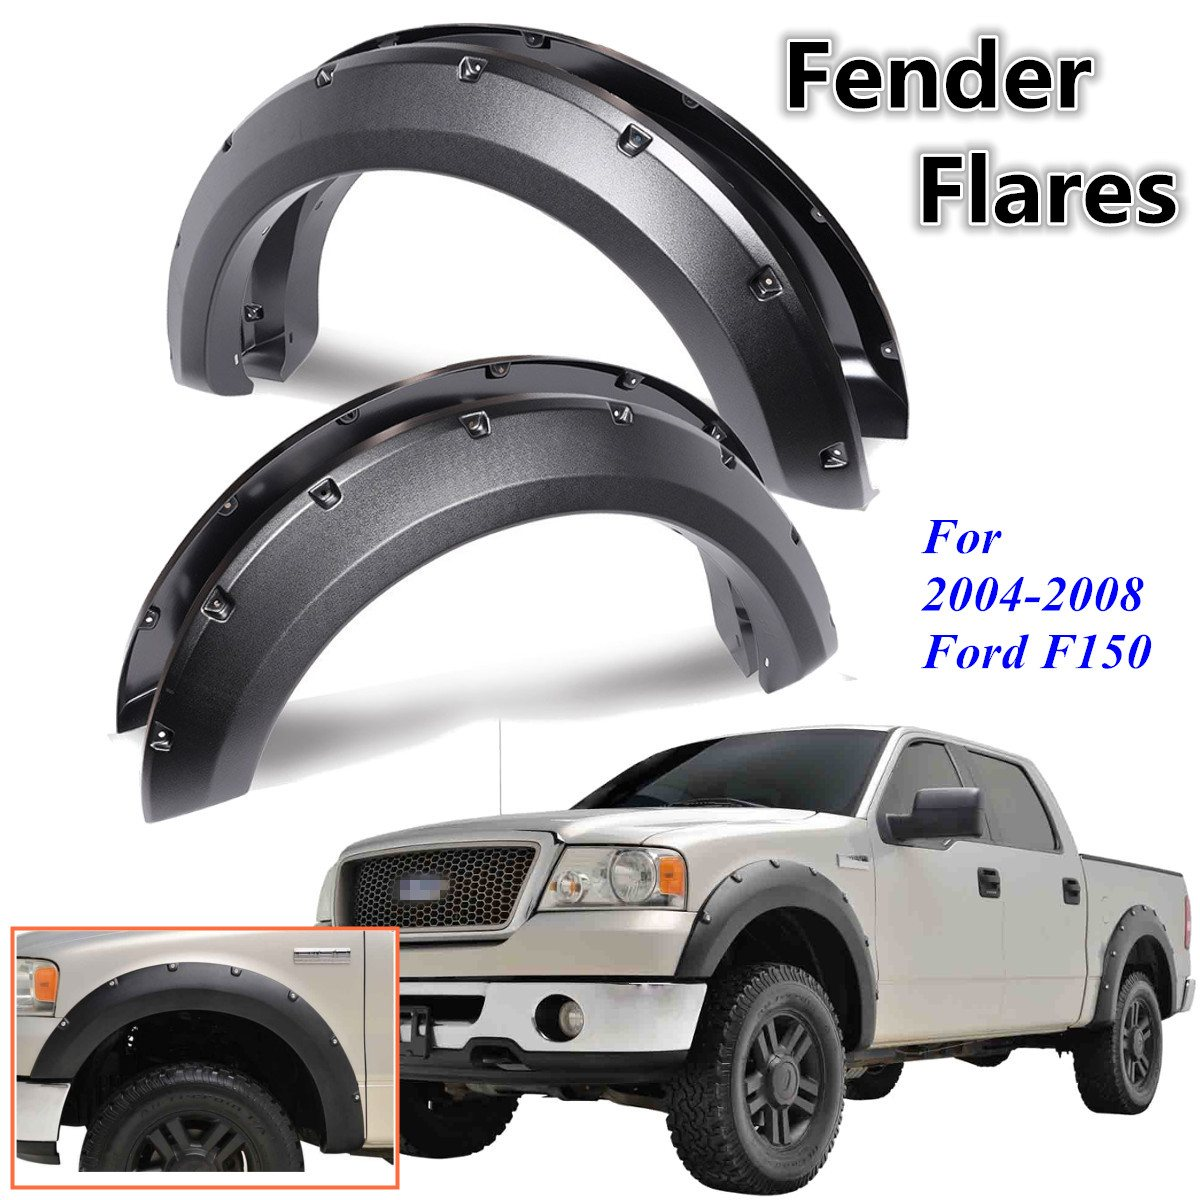 4Pcs Car Rivet Style Side for Fender Mudguard Wheel Flares For Ford F150 2004 2005 2006 2007 2008 1 pair new white front for fender flares for toyota hilux 2005 2006 2007 2008 2009 2010 2011 for fender fares